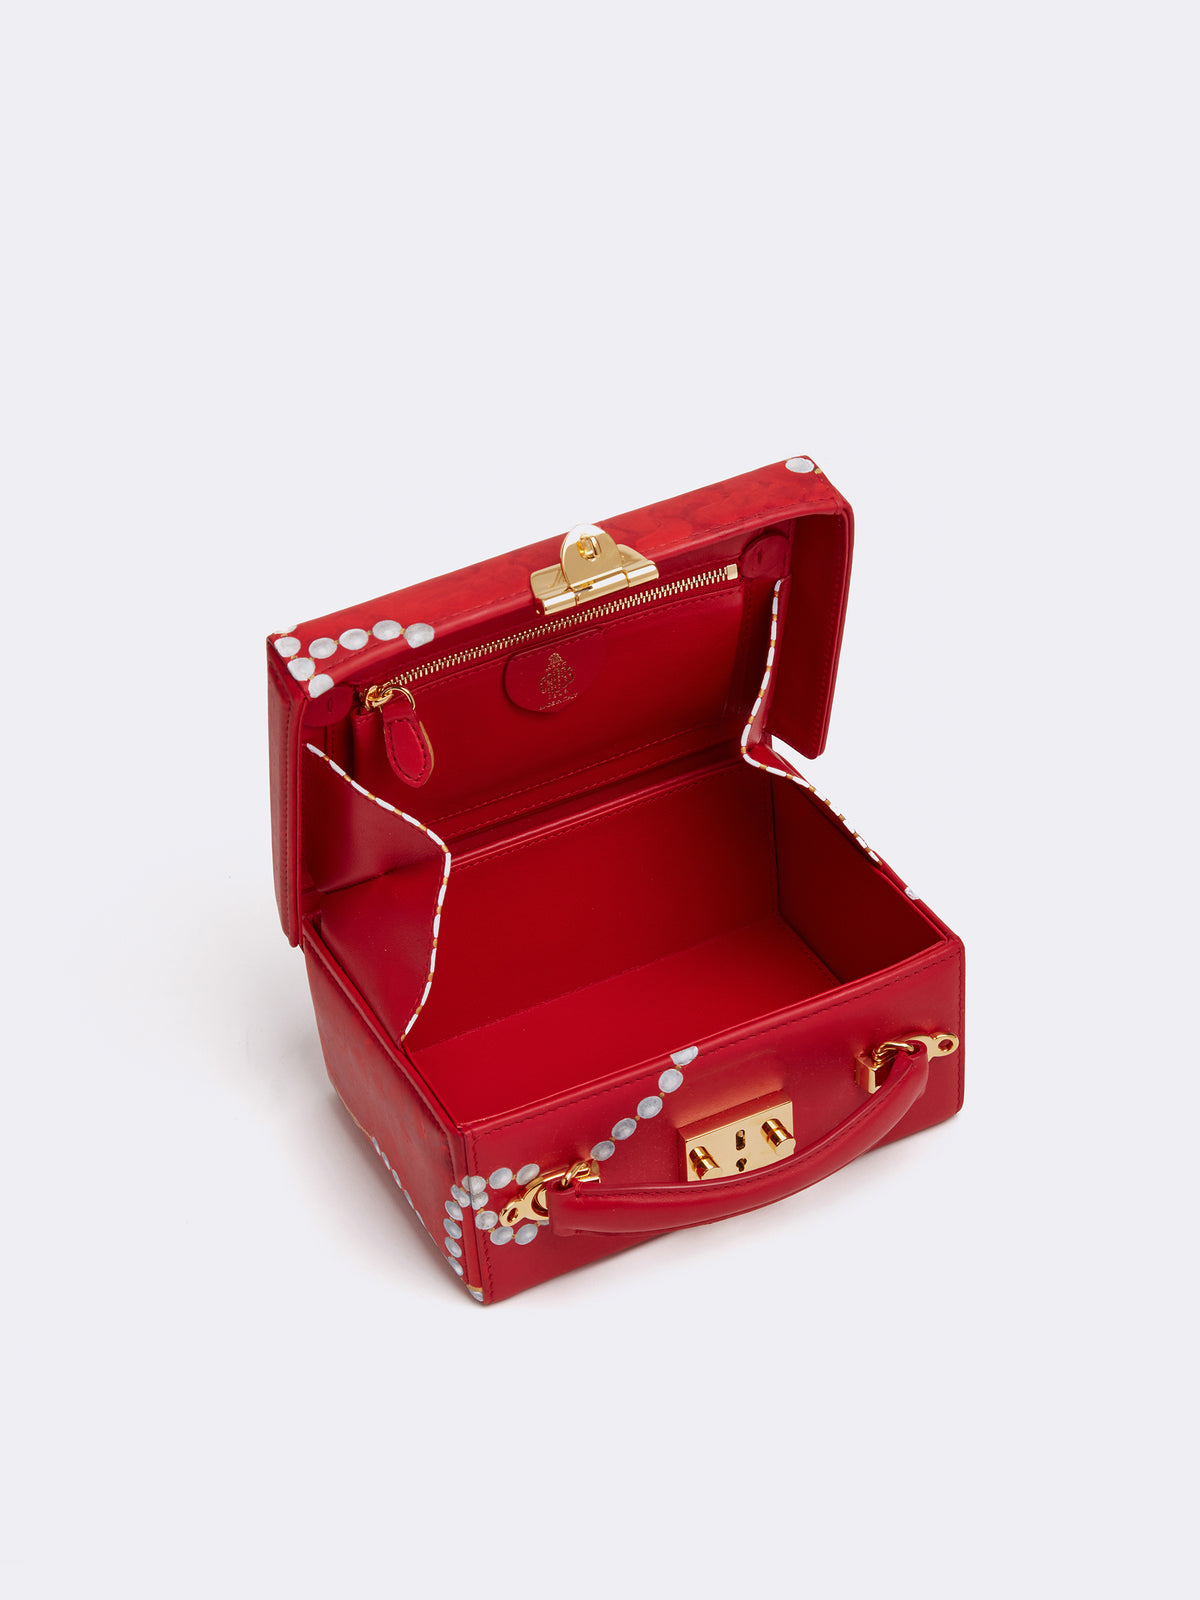 Sophie Matisse x Mark Cross Grace Small Leather Box Bag Smooth Calf MC Red / Pearl Interior